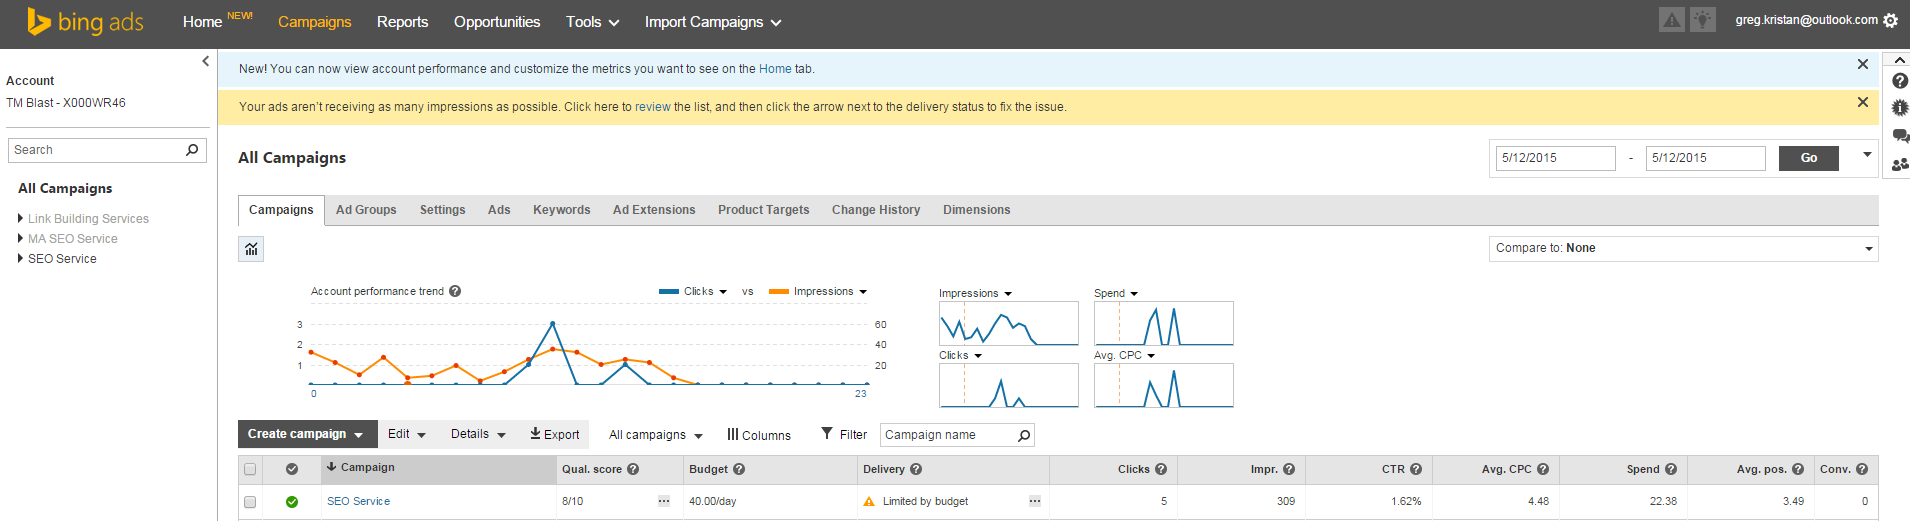 Dashboard Before Conversion in Bing Ads